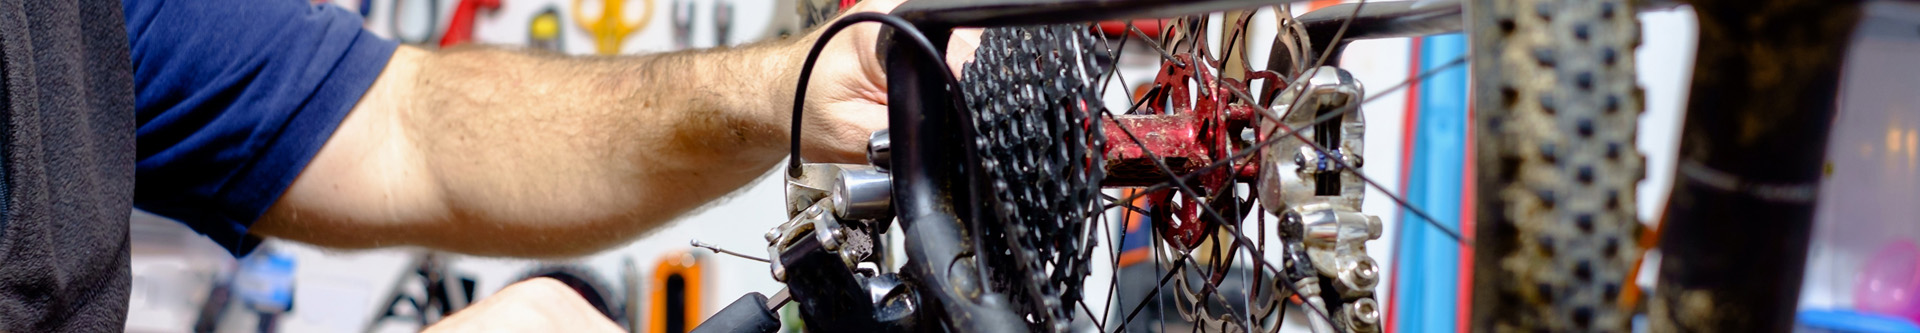 Inverness Bicycle & Fitness Repair